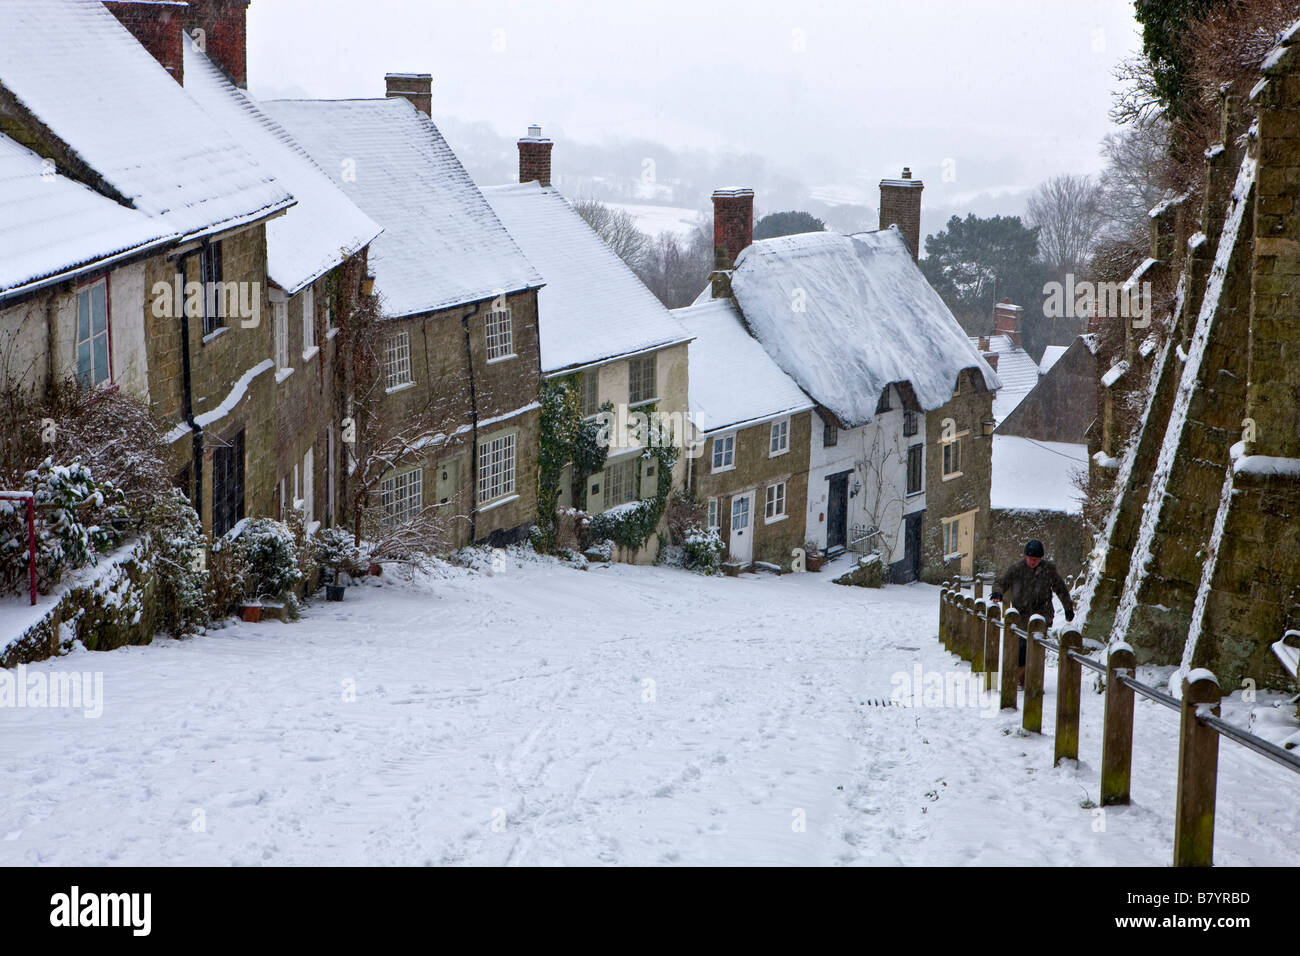 Gold Hill in the winter snow at Shaftesbury in Dorset, England - Stock Image